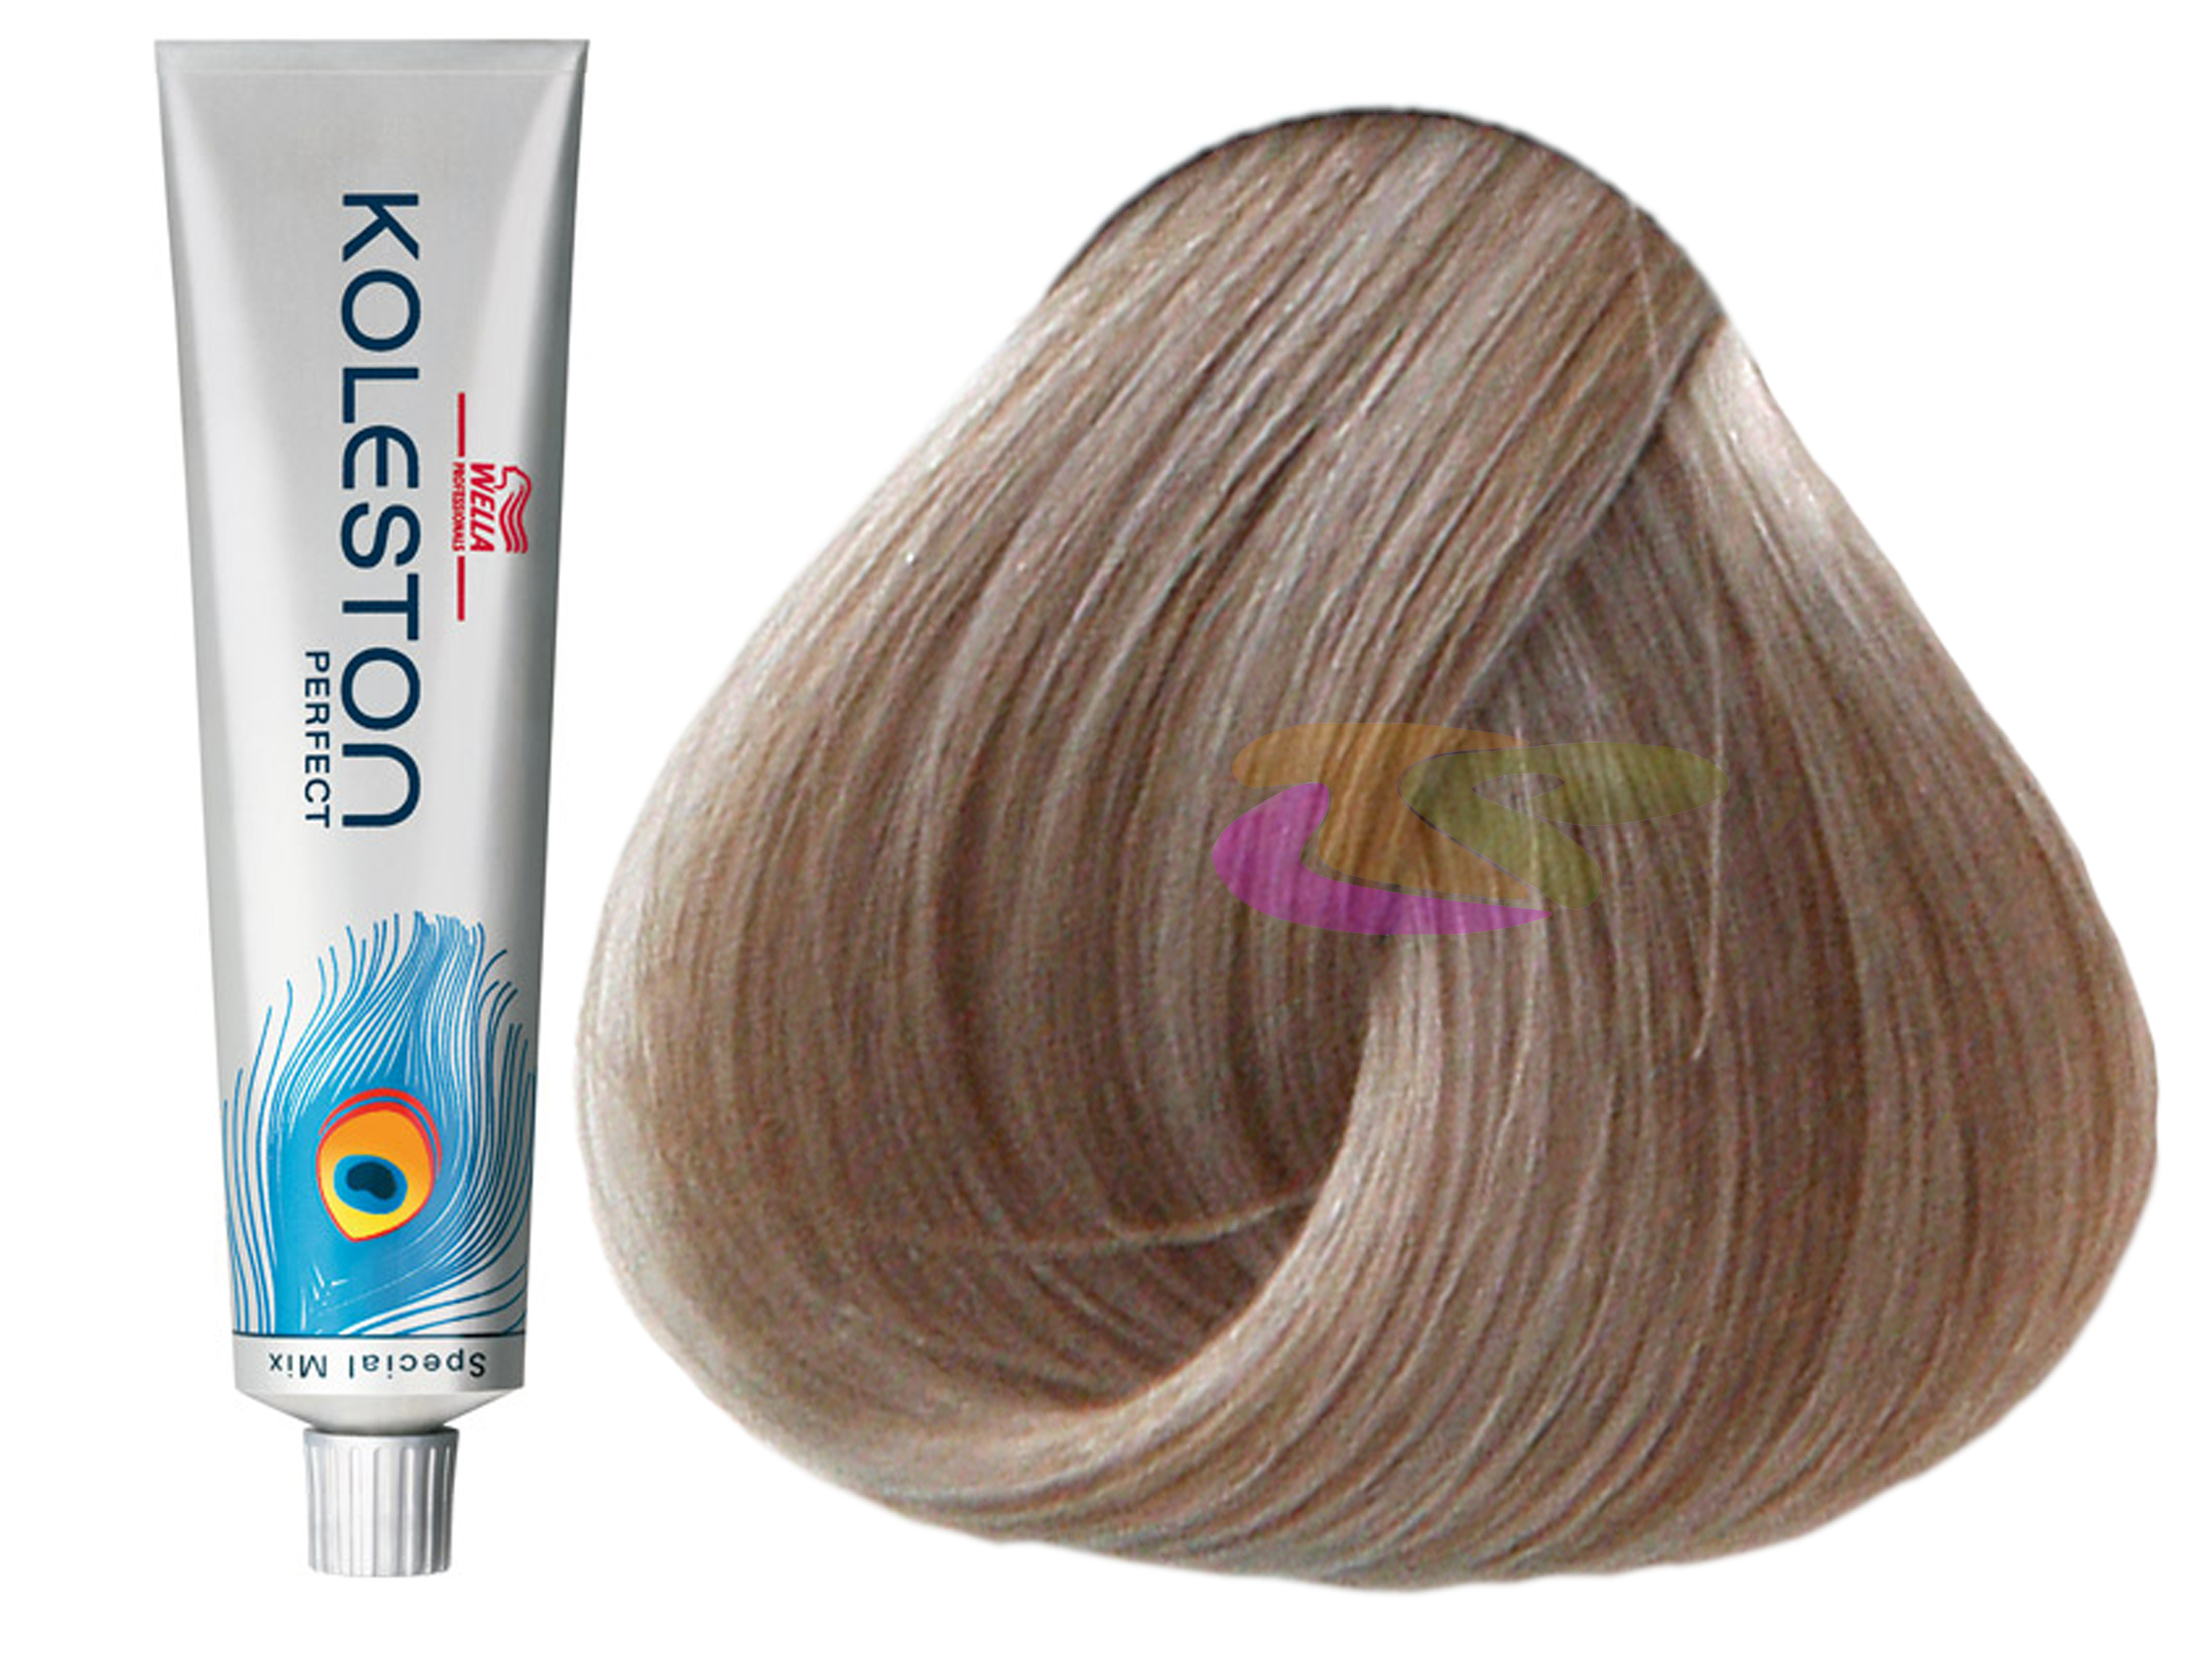 wella coloration koleston perfect special mix 081 60 ml oxydant offert - Coloration Wella